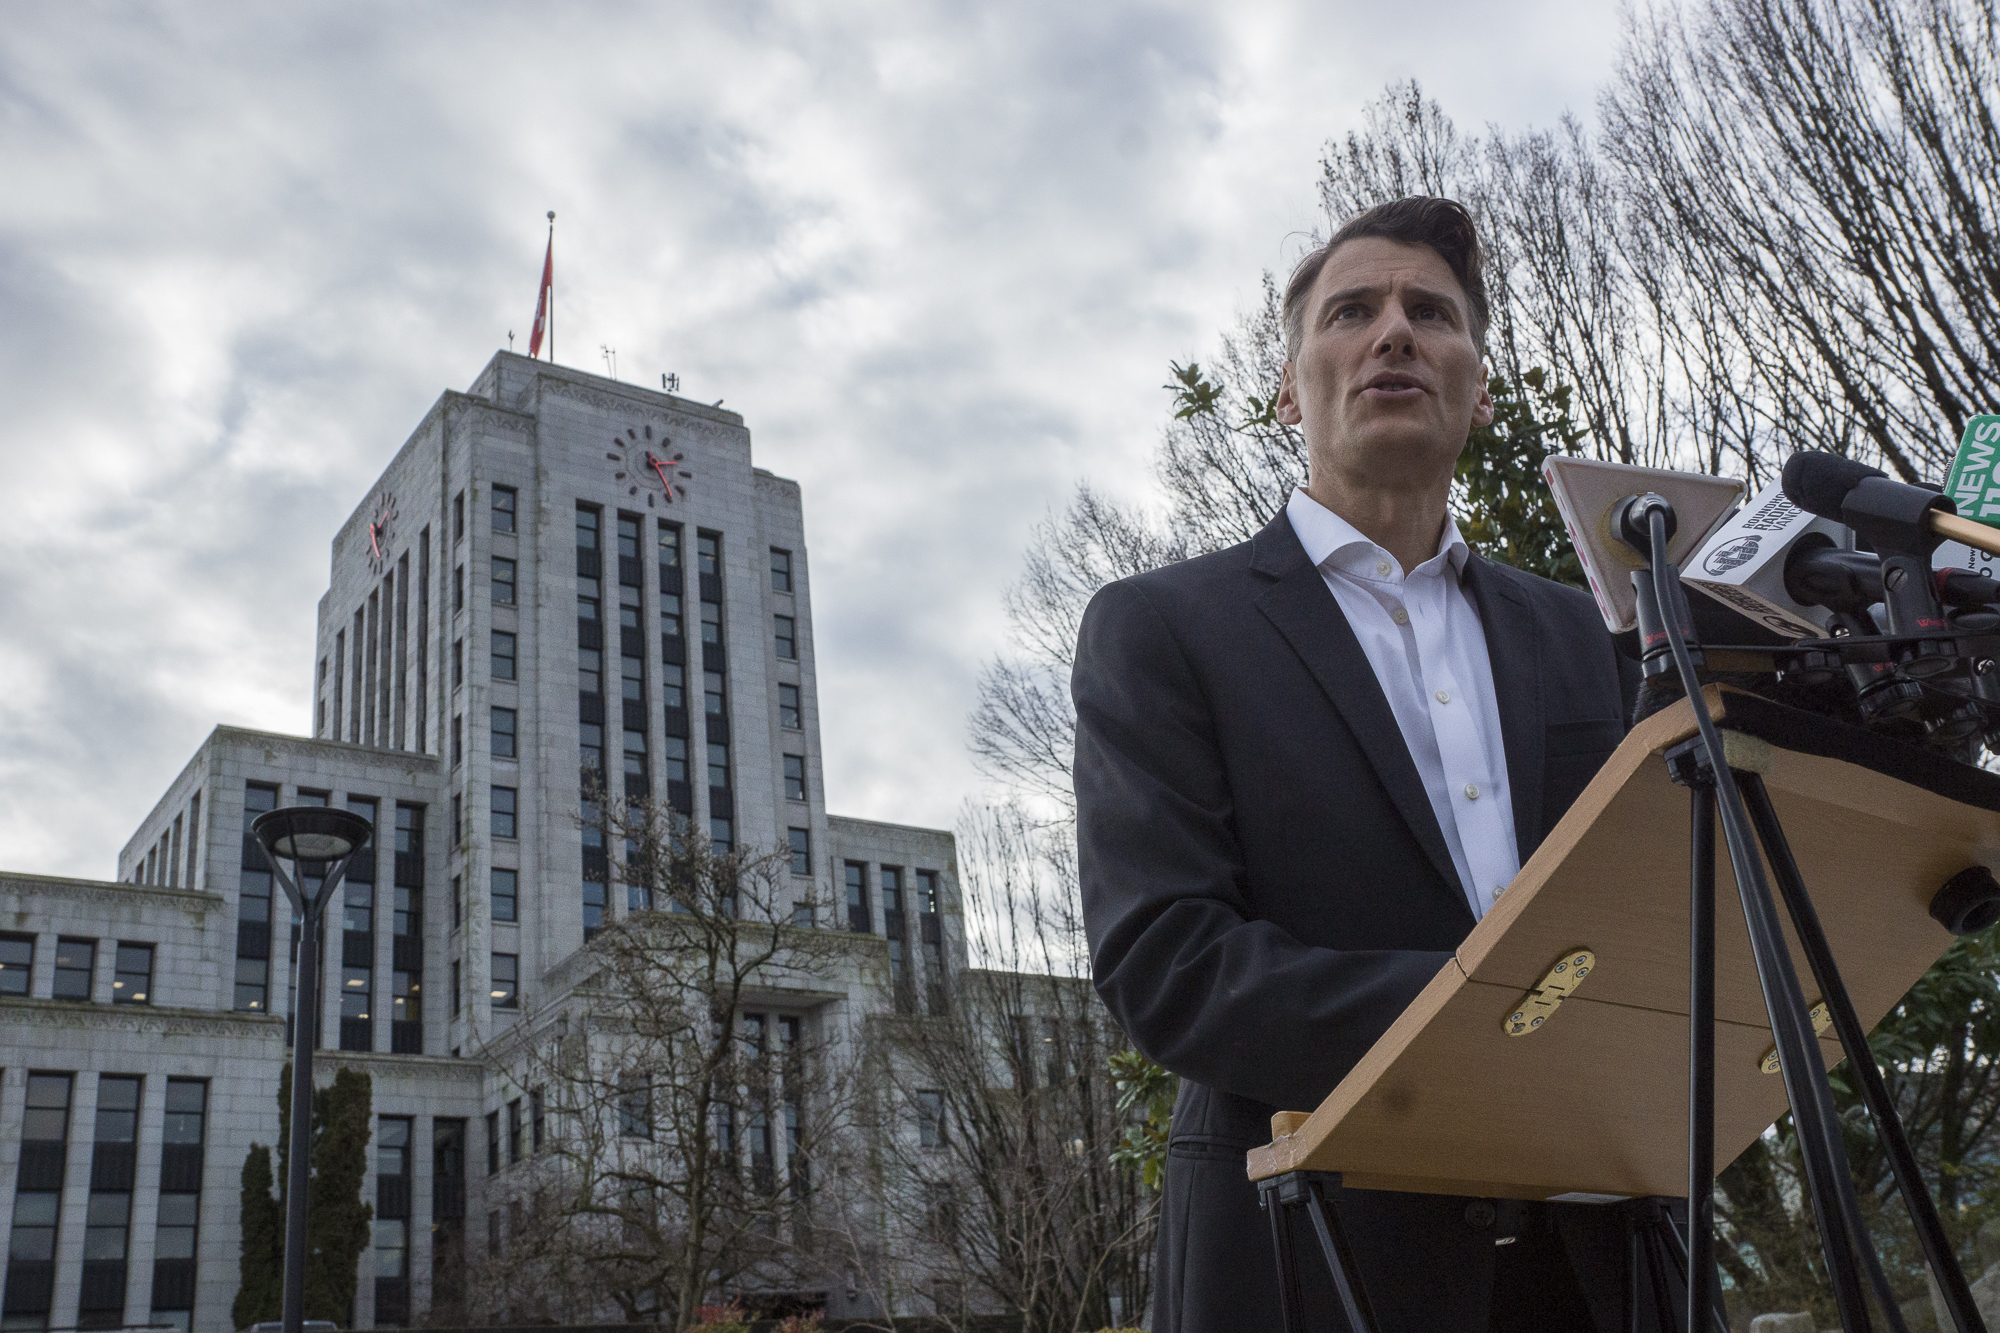 Mayor Gregor Roberston announces on Jan. 8, he won't seek re-election. (Tina Lovgreen/CBC)